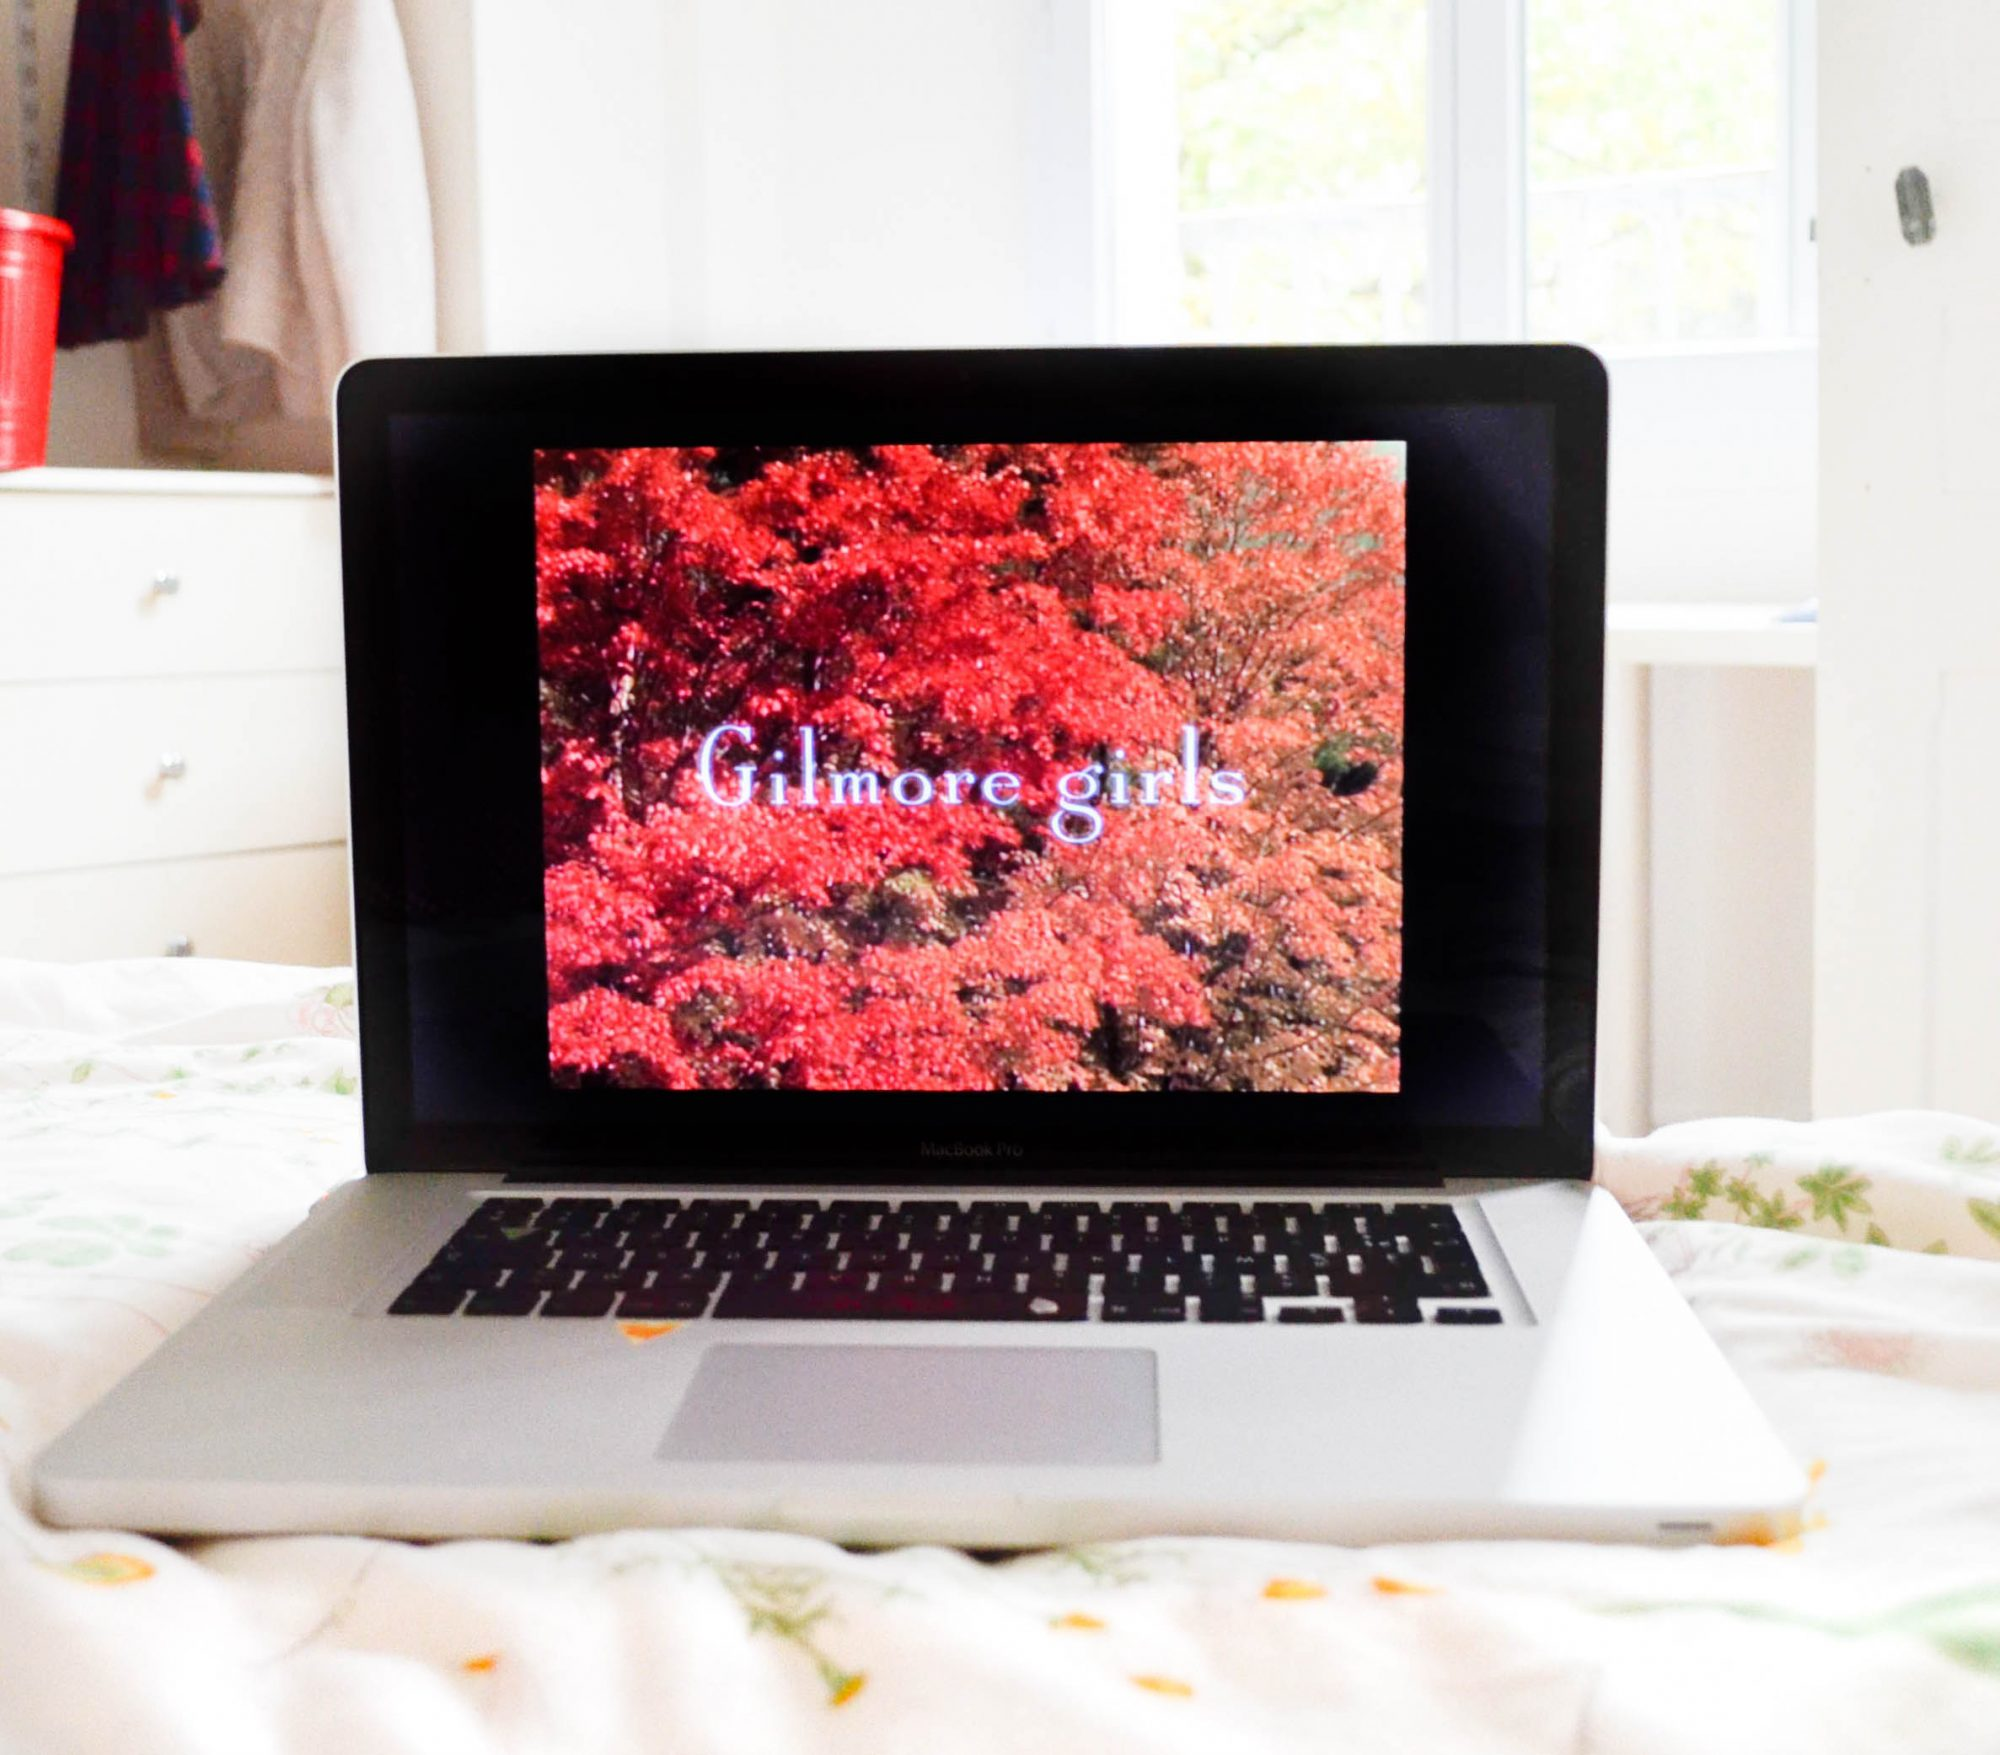 gilmore-girls-marathon-2